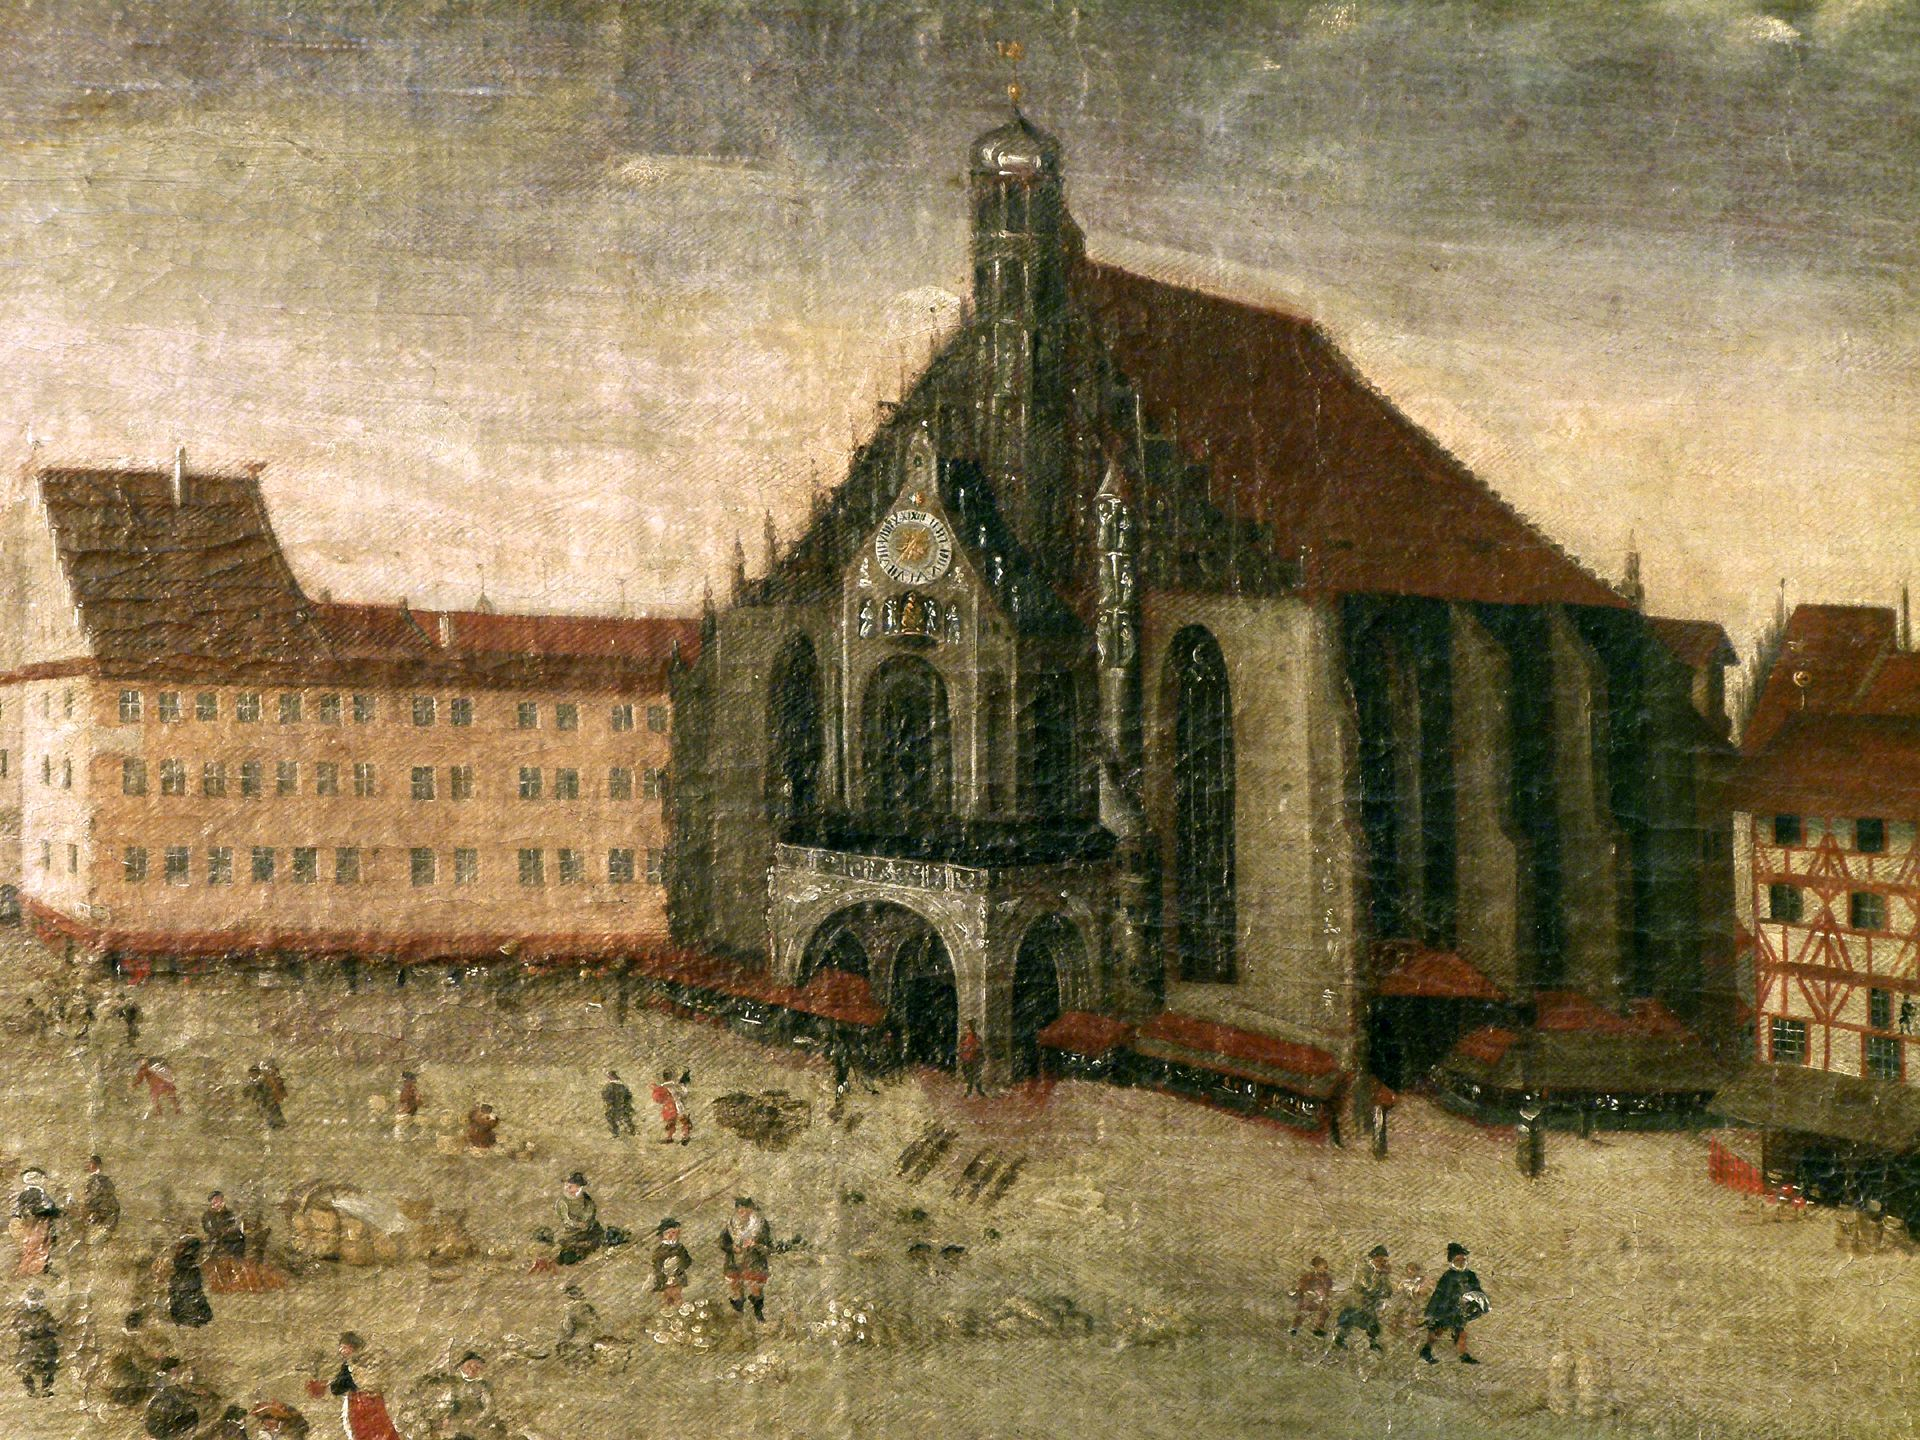 The Nuremberg Main Market (Hauptmarkt) Stromer premises and Our Lady´s Church